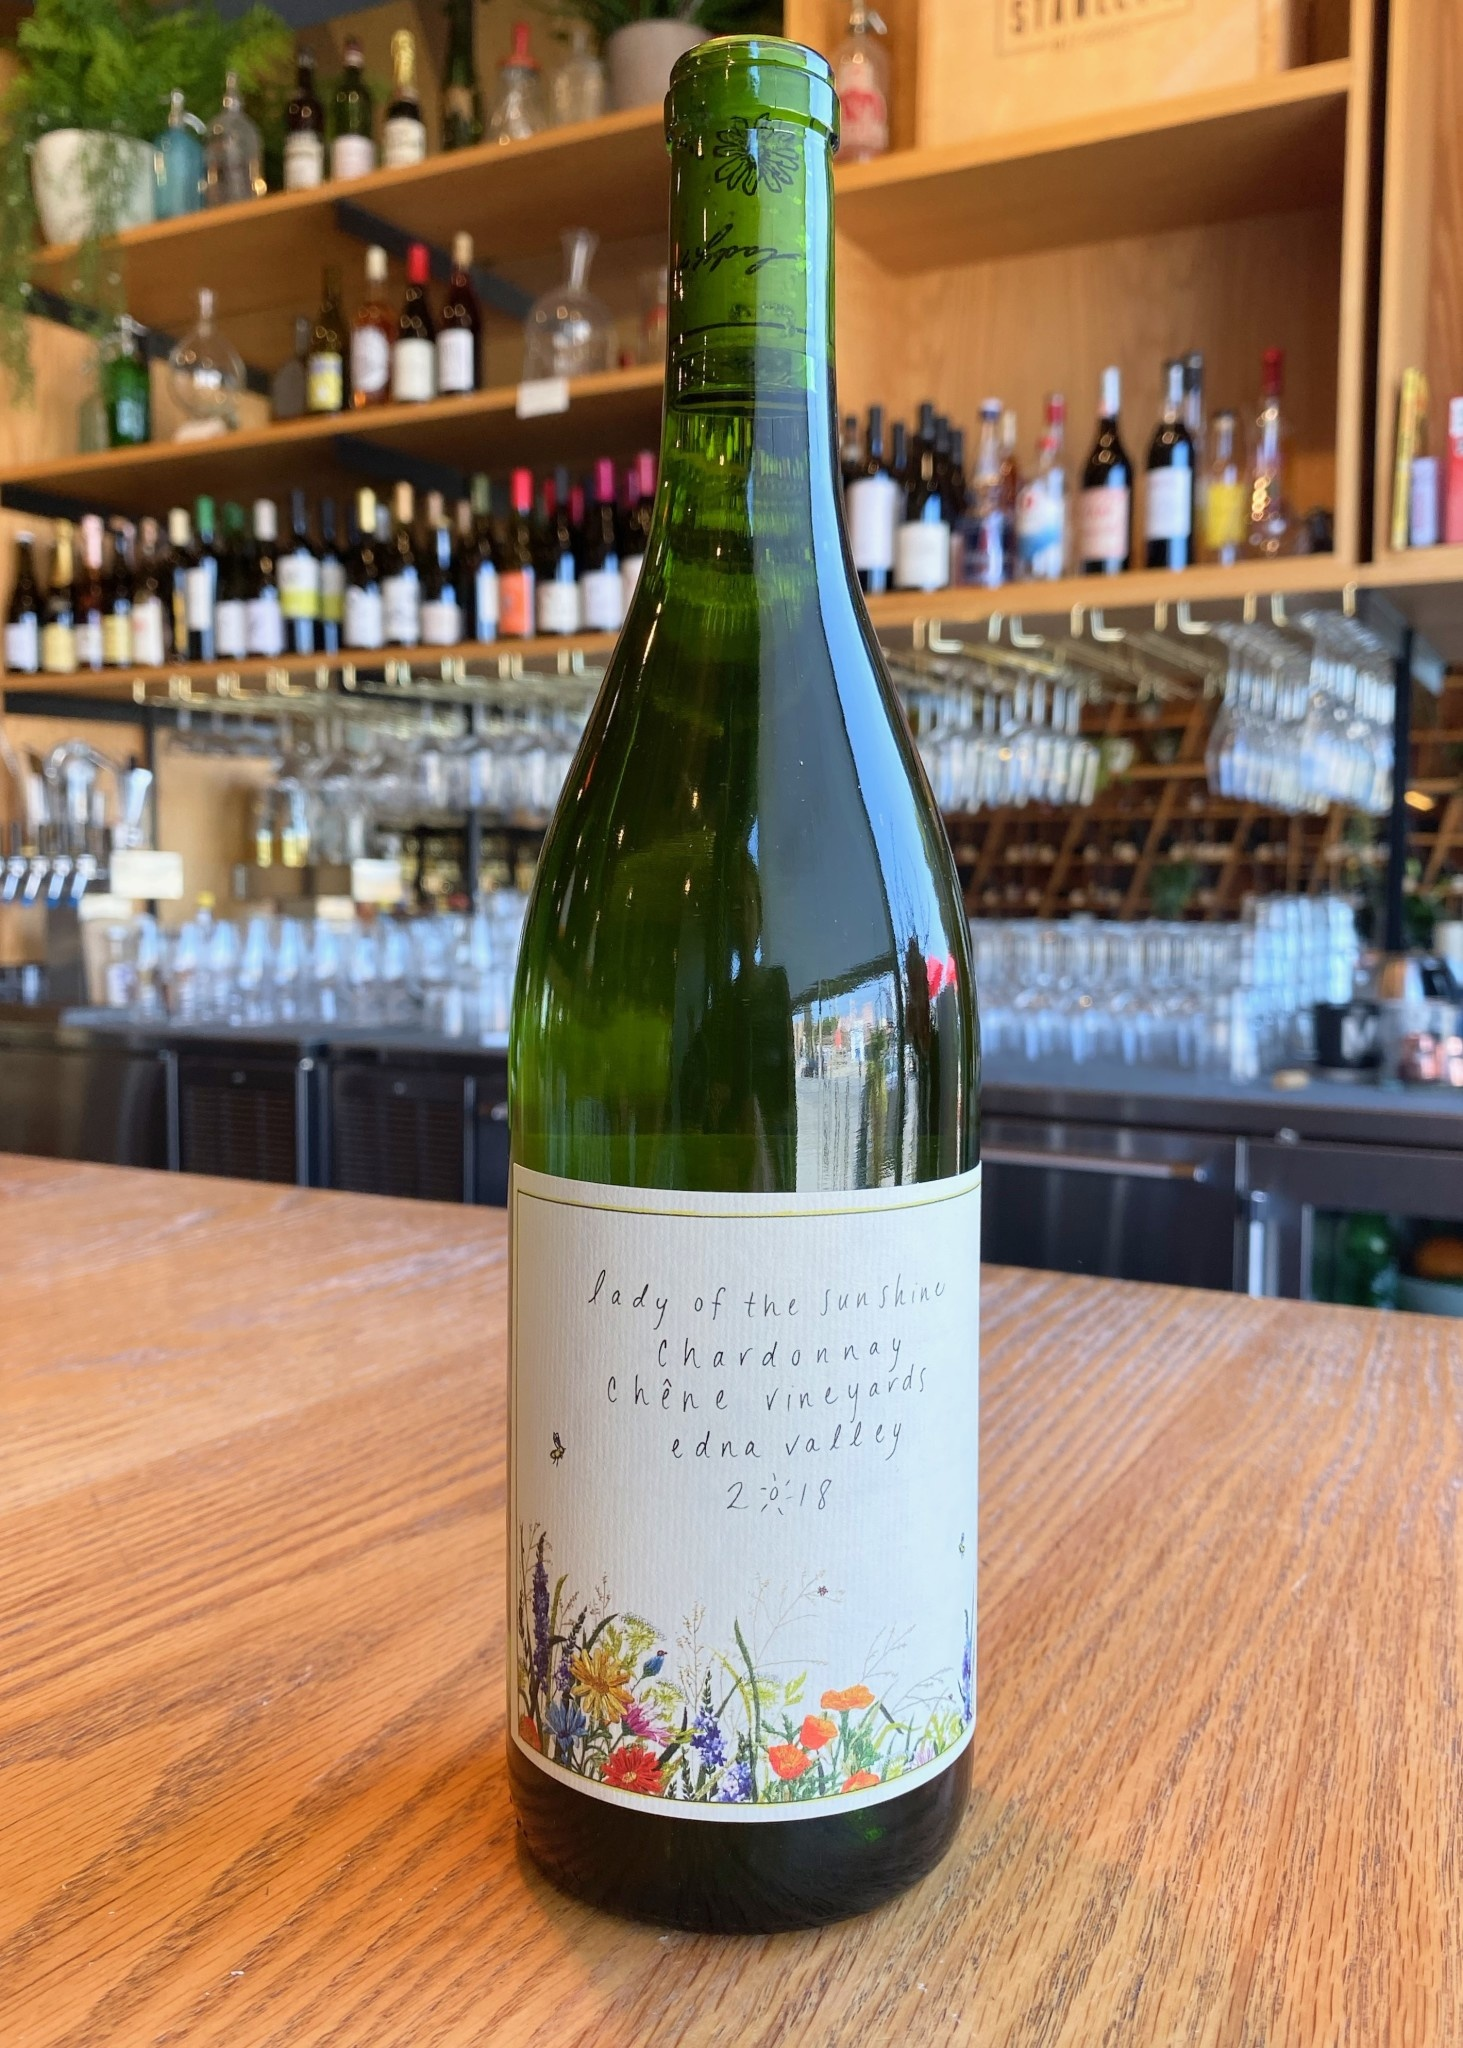 Lady of Sunshine 2018 Lady of the Sunshine Chardonnay Chene Vineyard Edna Valley 750ml